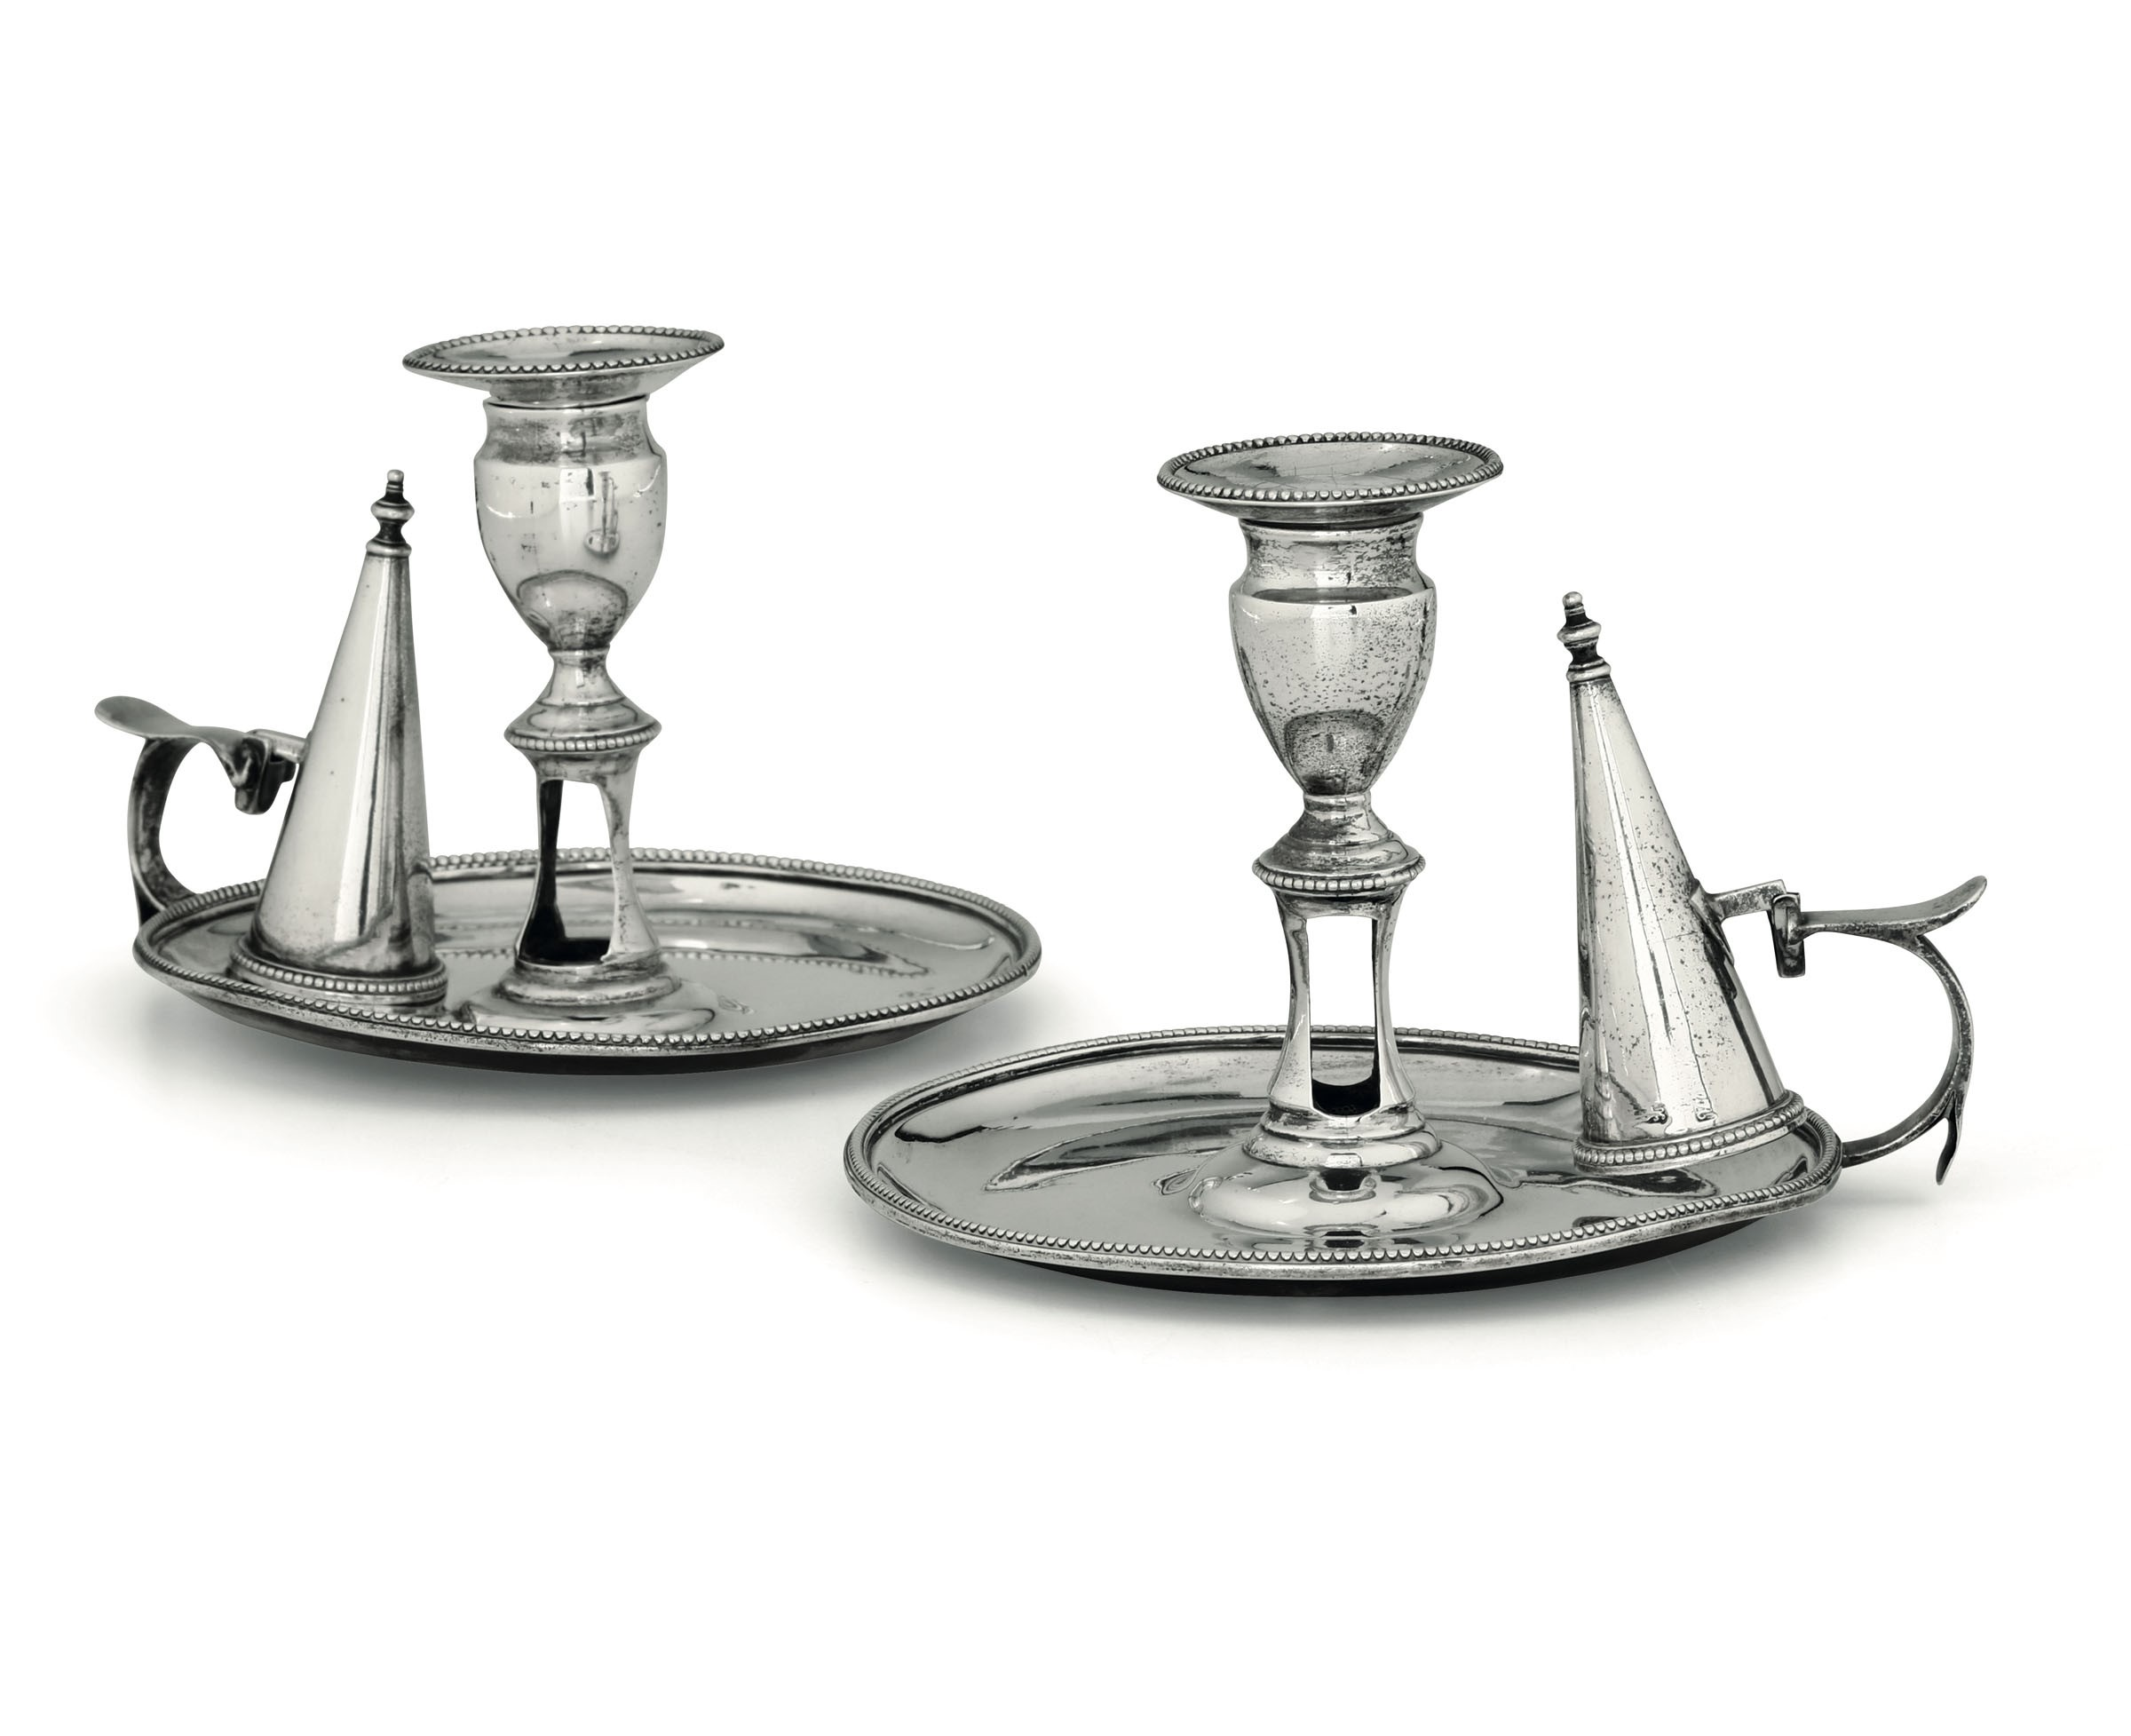 Lot 37 - Two silver candle holders, London, 1803 and 1780 - Molten, embossed and chiselled [...]